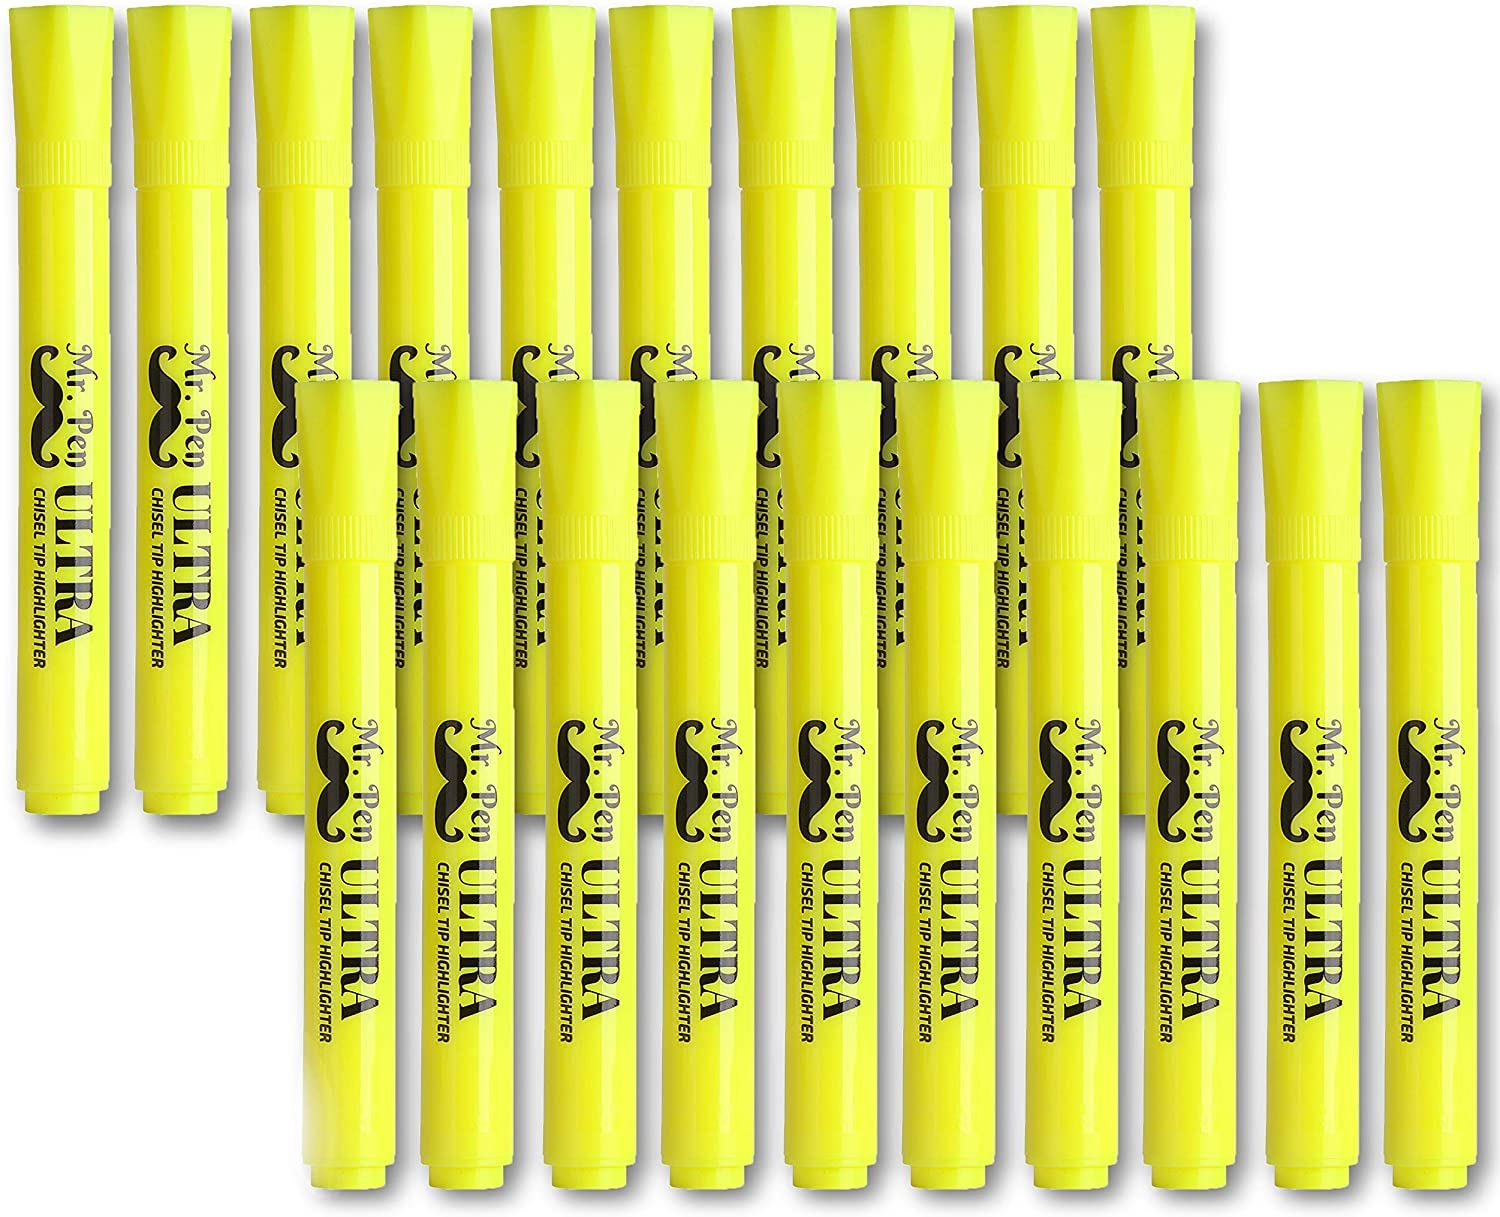 Mr. Pen Yellow Highlighters, Tank Style Highlighter, Pack of 20, Highlighters Markers, Highlighter Pen, Yellow Fluorescent Highlighter, Chisel Tip, Yellow Marker, Bulk Highlighter, Liquid Highlighter